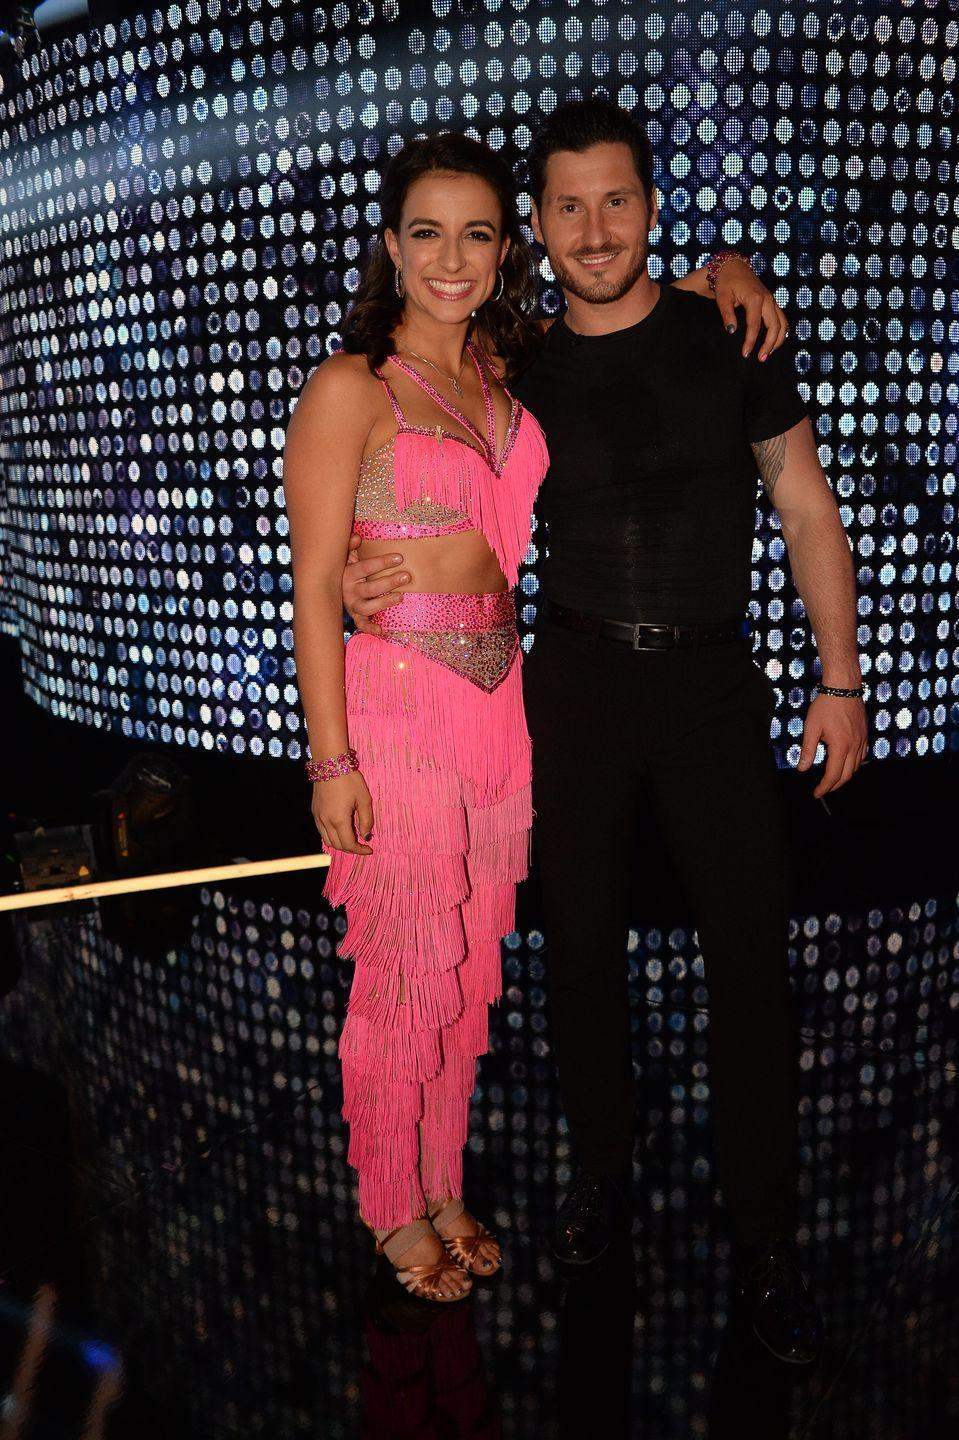 "<p>The entire right side of Victoria's body went into spasm while rehearsing with her pro partner Val Chmerkovskiy in season 25, <em><a href=""https://people.com/tv/victoria-arlen-suffers-painful-dwts-injury/"" rel=""nofollow noopener"" target=""_blank"" data-ylk=""slk:People"" class=""link rapid-noclick-resp"">People</a></em> reported. This wasn't the worst Victoria had ever faced: An autoimmune disease and neurological condition left her in a vegetative state in childhood. </p><p>Luckily, Victoria bounced back from her <em>DWTS</em> injury. ""I definitely didn't feel as strong as I felt in dress before the spasm,"" Victoria told co-host Tom Bergeron on camera. ""But kind of overcoming that … getting out of that scared mindset really helped me kind of go out there. It wasn't as good as it could have been, but given the circumstances, I'm very happy with it.""</p>"